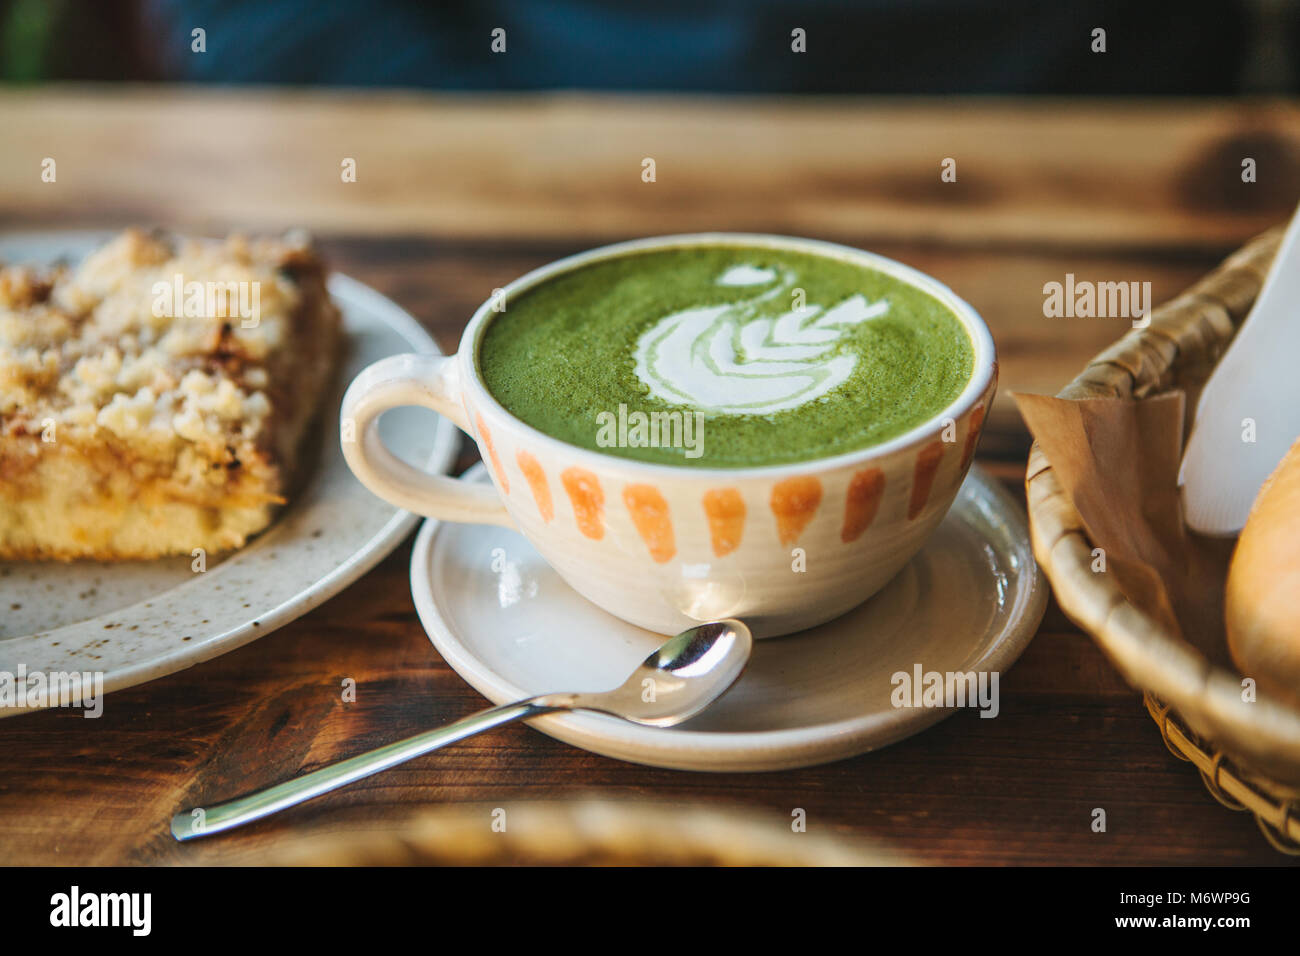 Close-up ceramic cup with green tea called Matcha - Stock Image